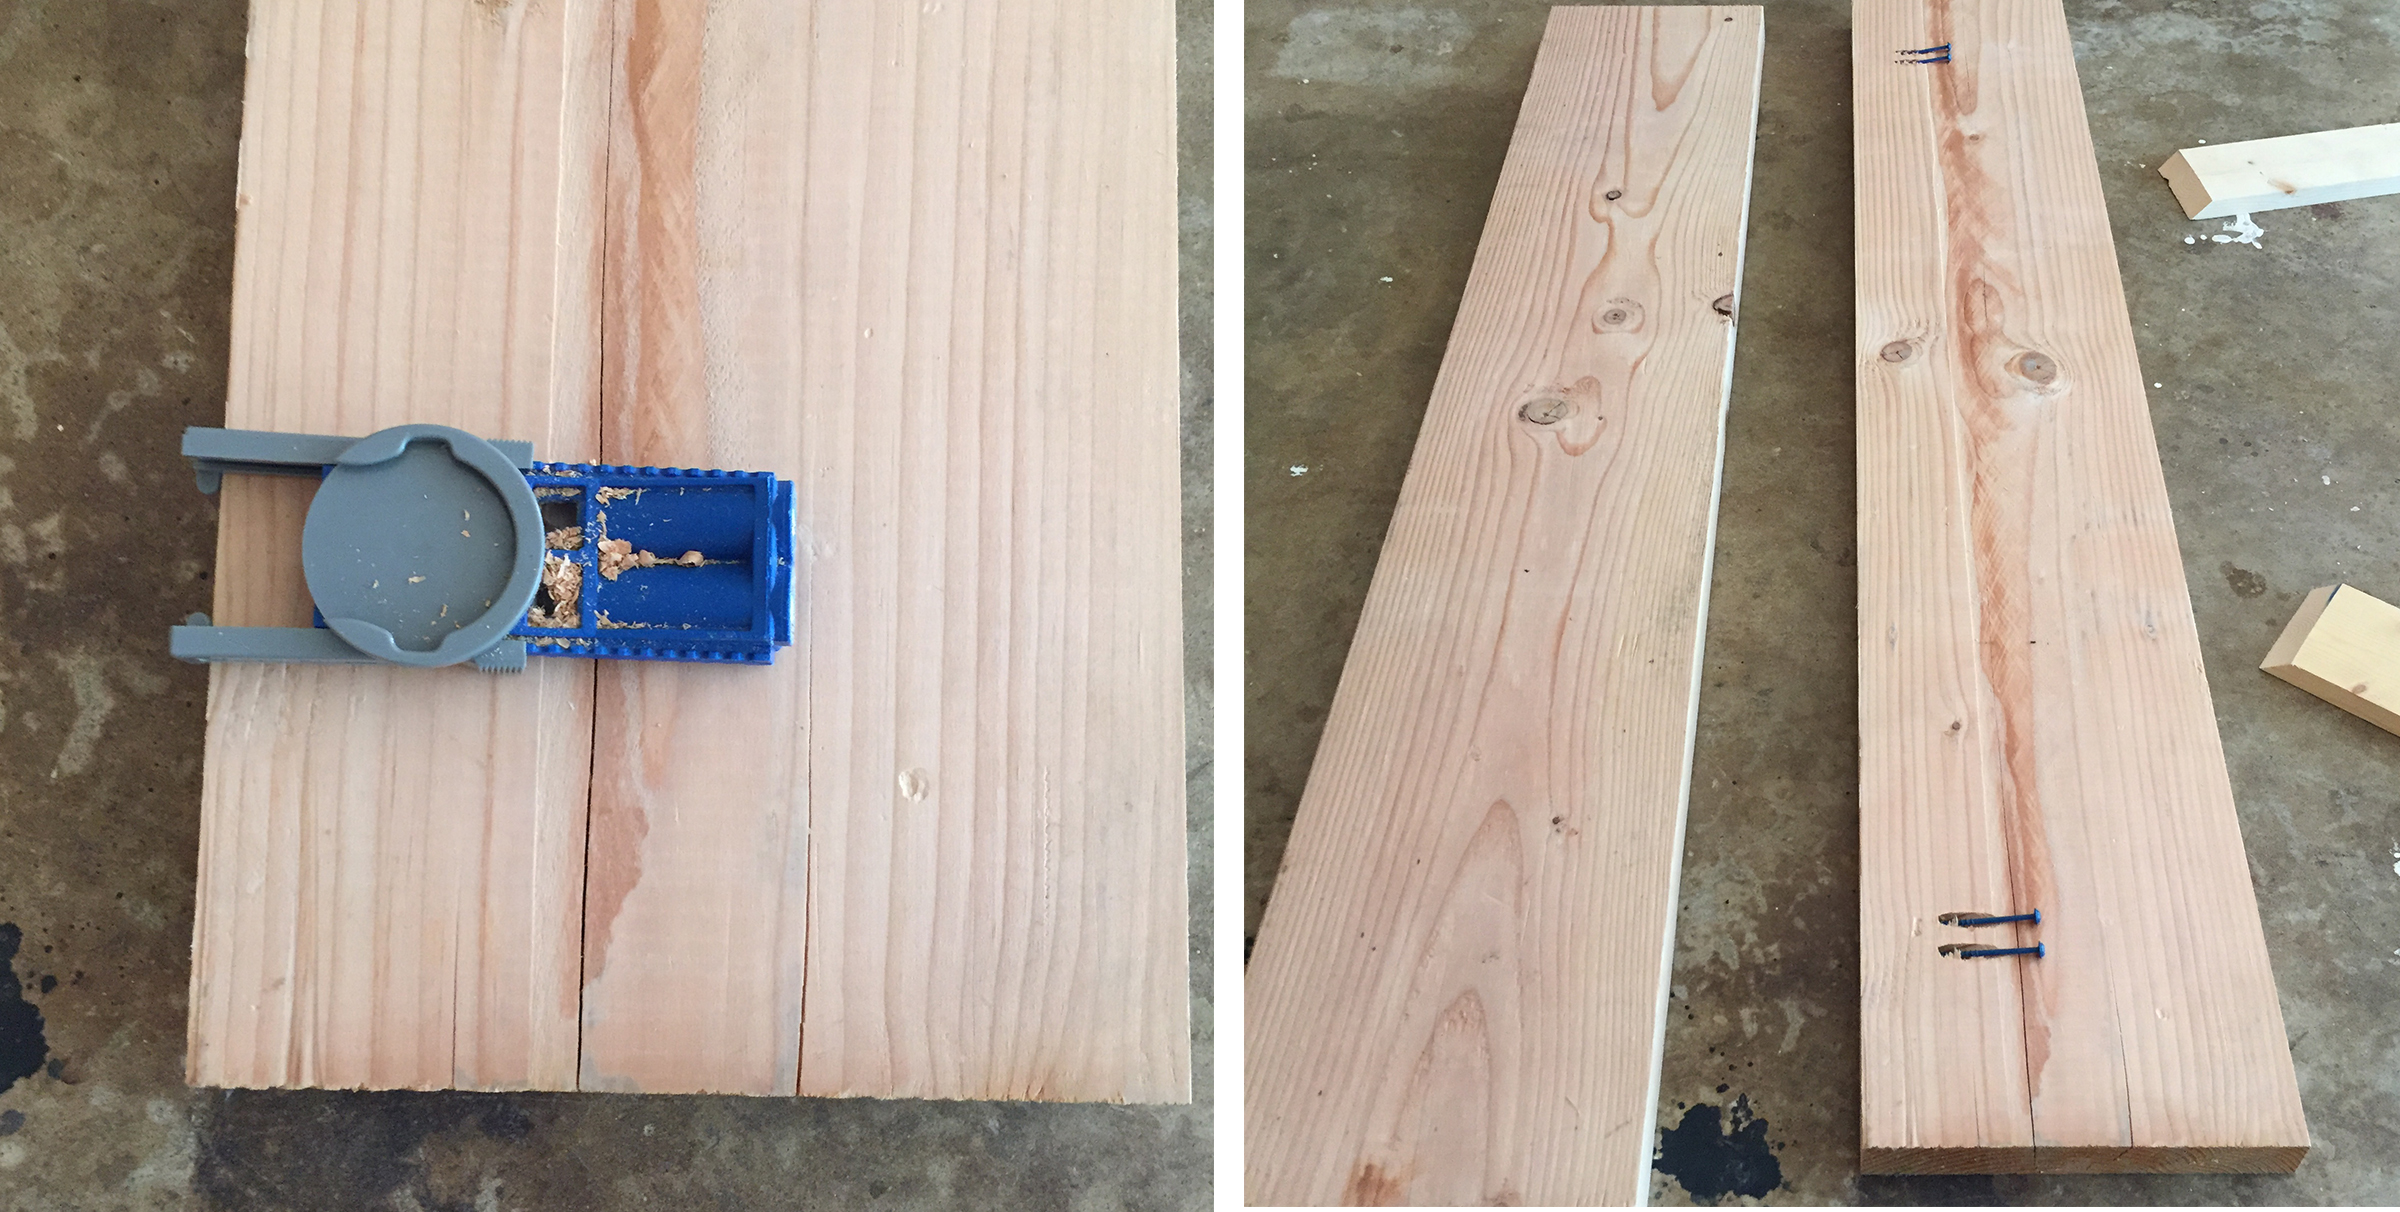 First we took both the 4ft 2x10s and used a kreg tool to drill pocket hole screws to hold the two pieces together. This will be the table top. Before we screwed the pieces together we put some Carpenters Wood Glue between the pieces to give it an even firmer hold. Once we glued it, THEN we screwed it.